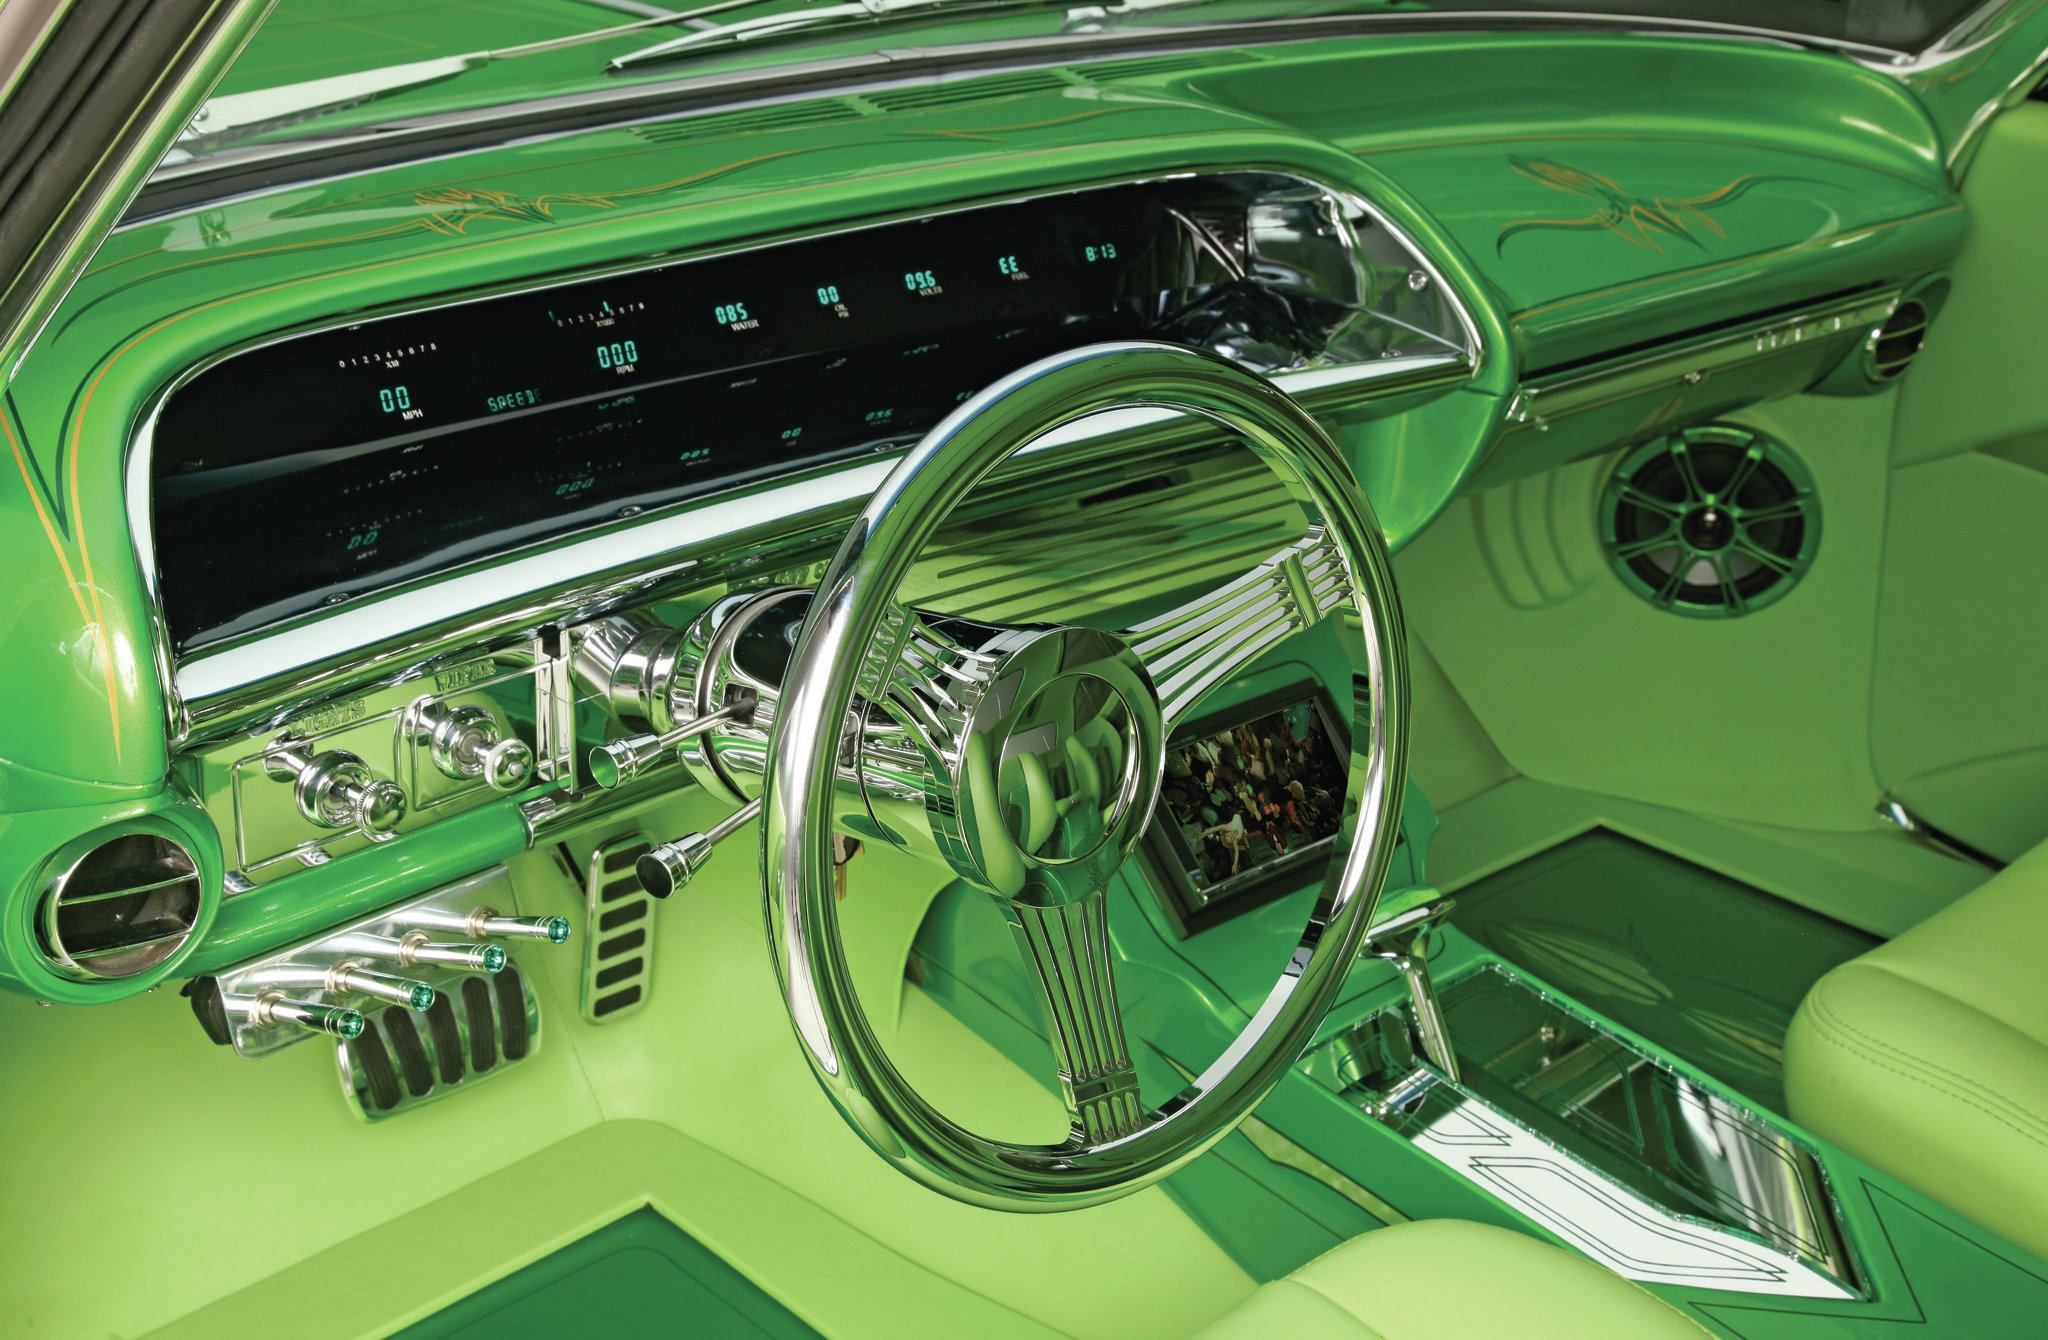 1964 chevrolet impala lime green machine. Black Bedroom Furniture Sets. Home Design Ideas